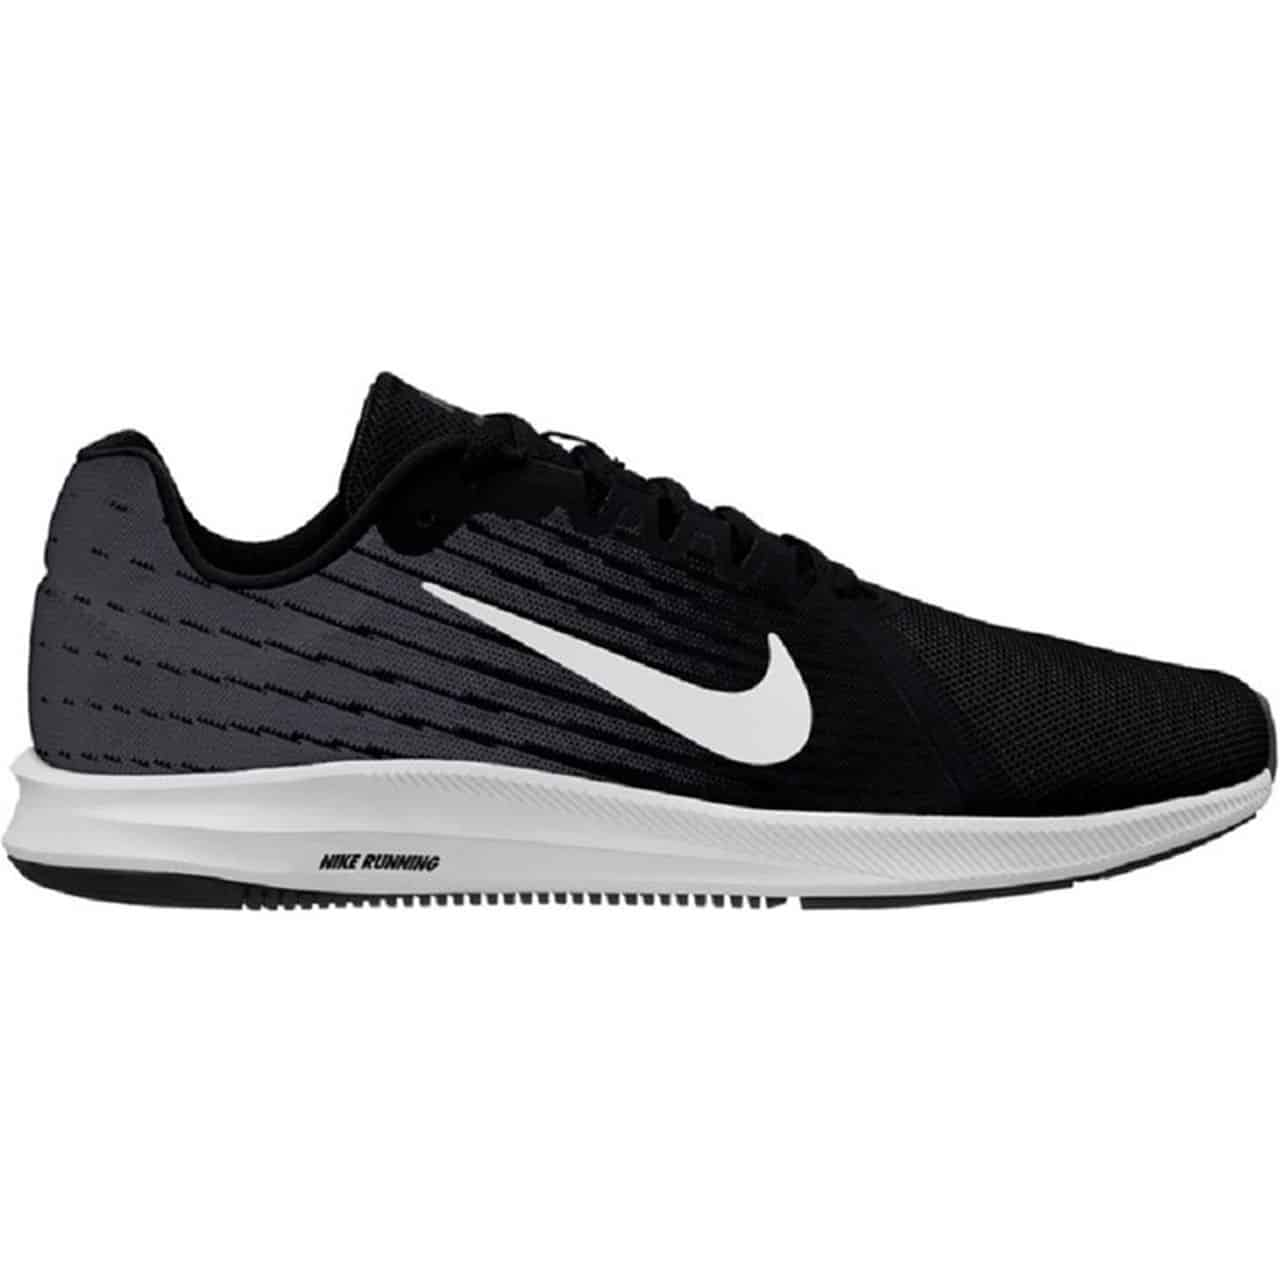 ADIDASI ORIGINALI NIKE DOWNSHIFTER 8 - 908984 001